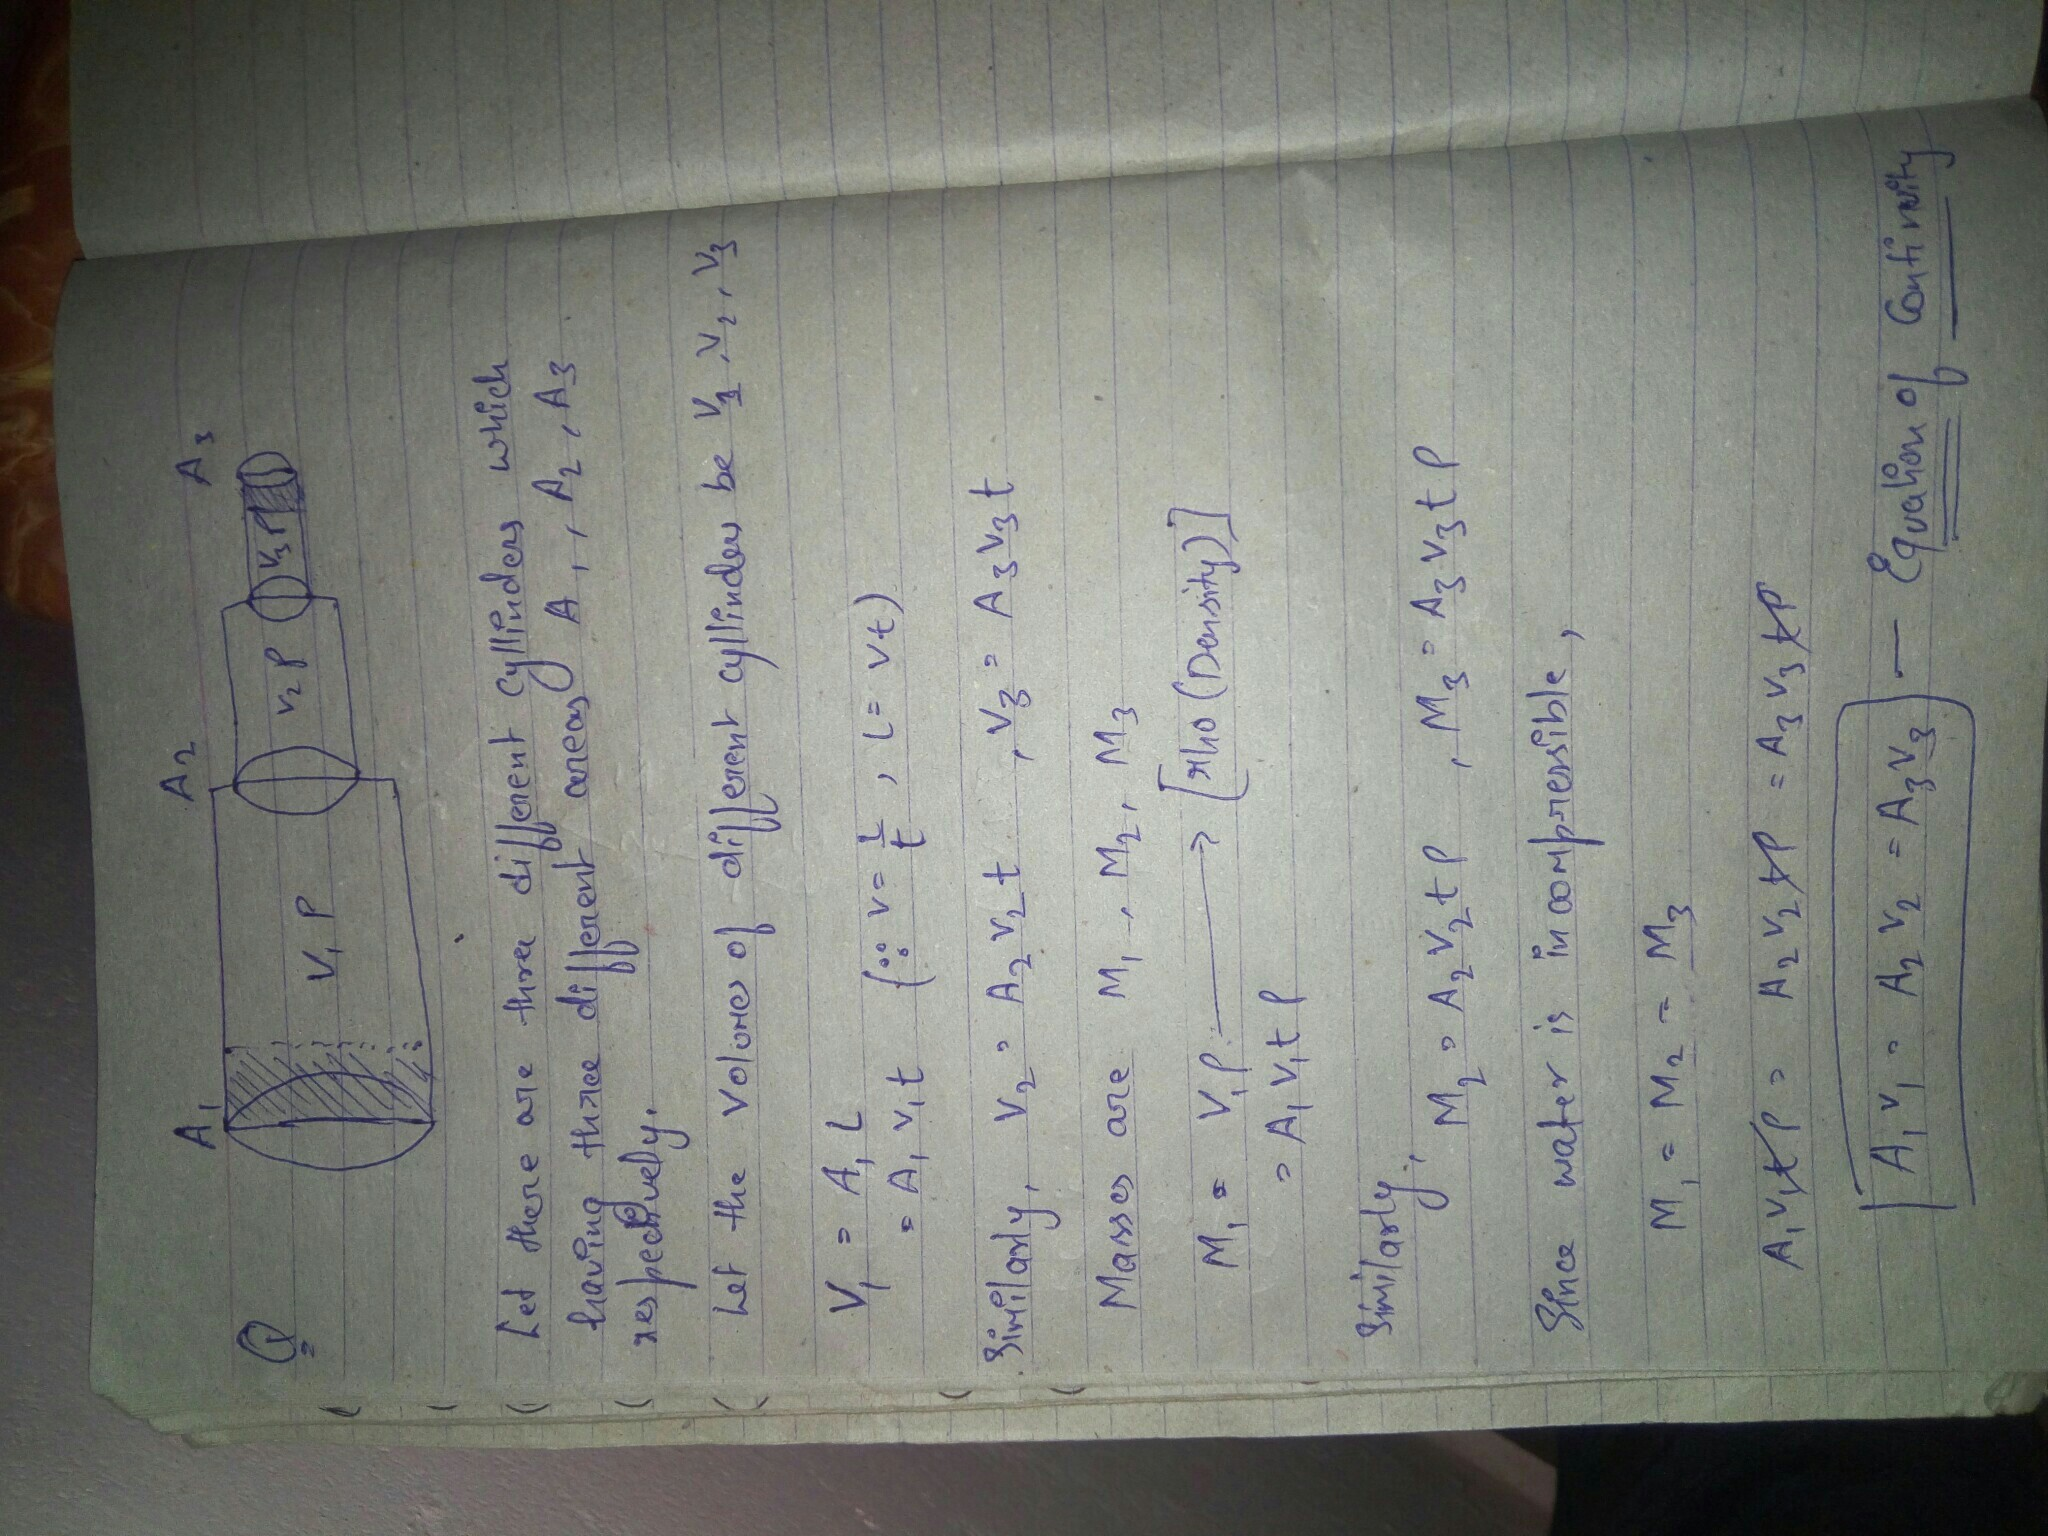 Continuity equation in cylindrical coordinates proof